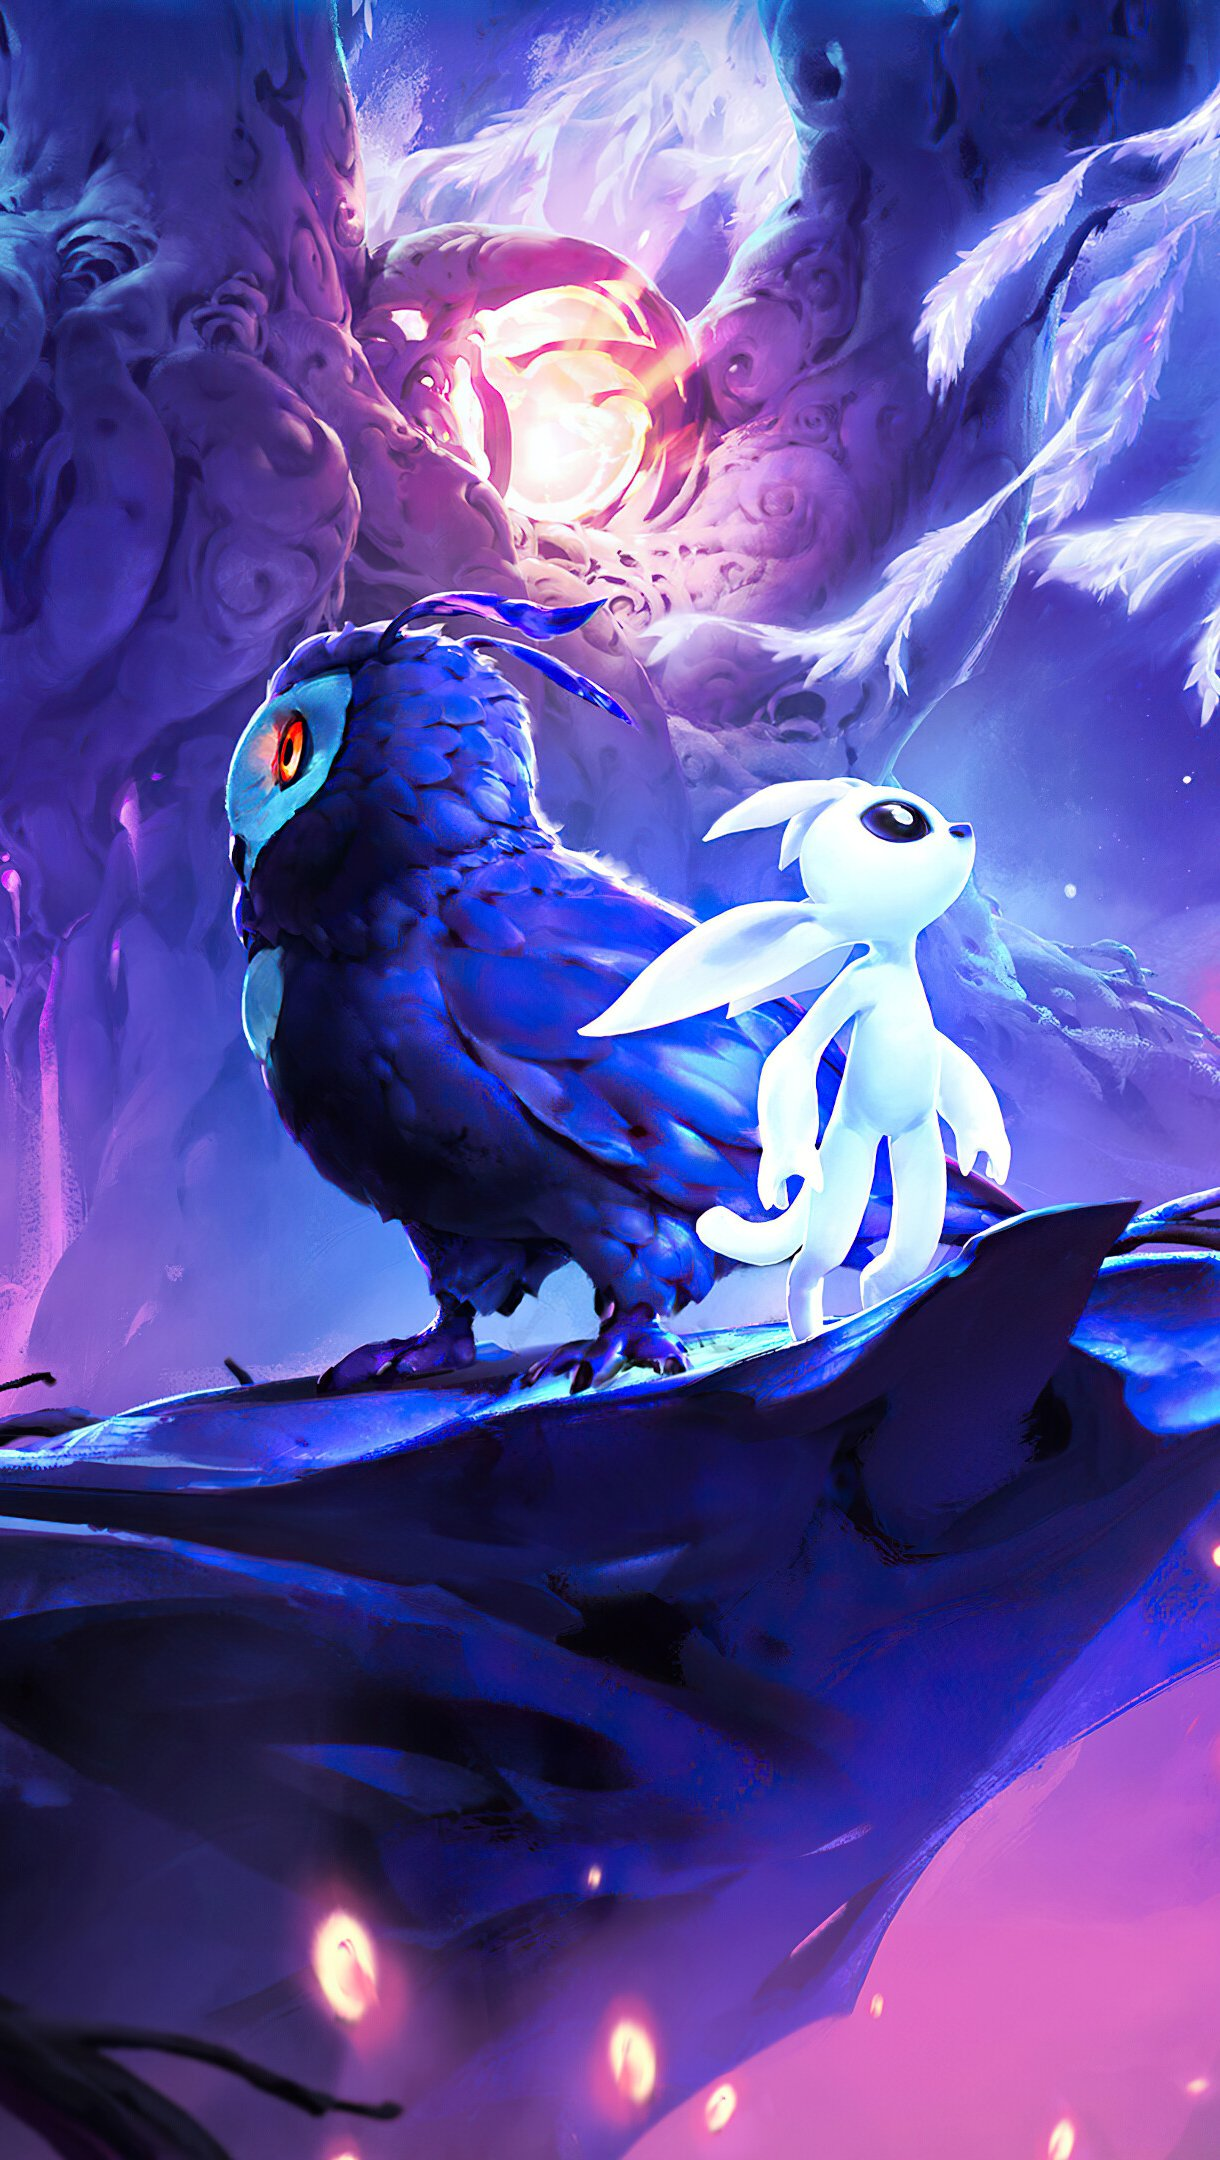 Wallpaper Ori and the Will of the Wisps Vertical